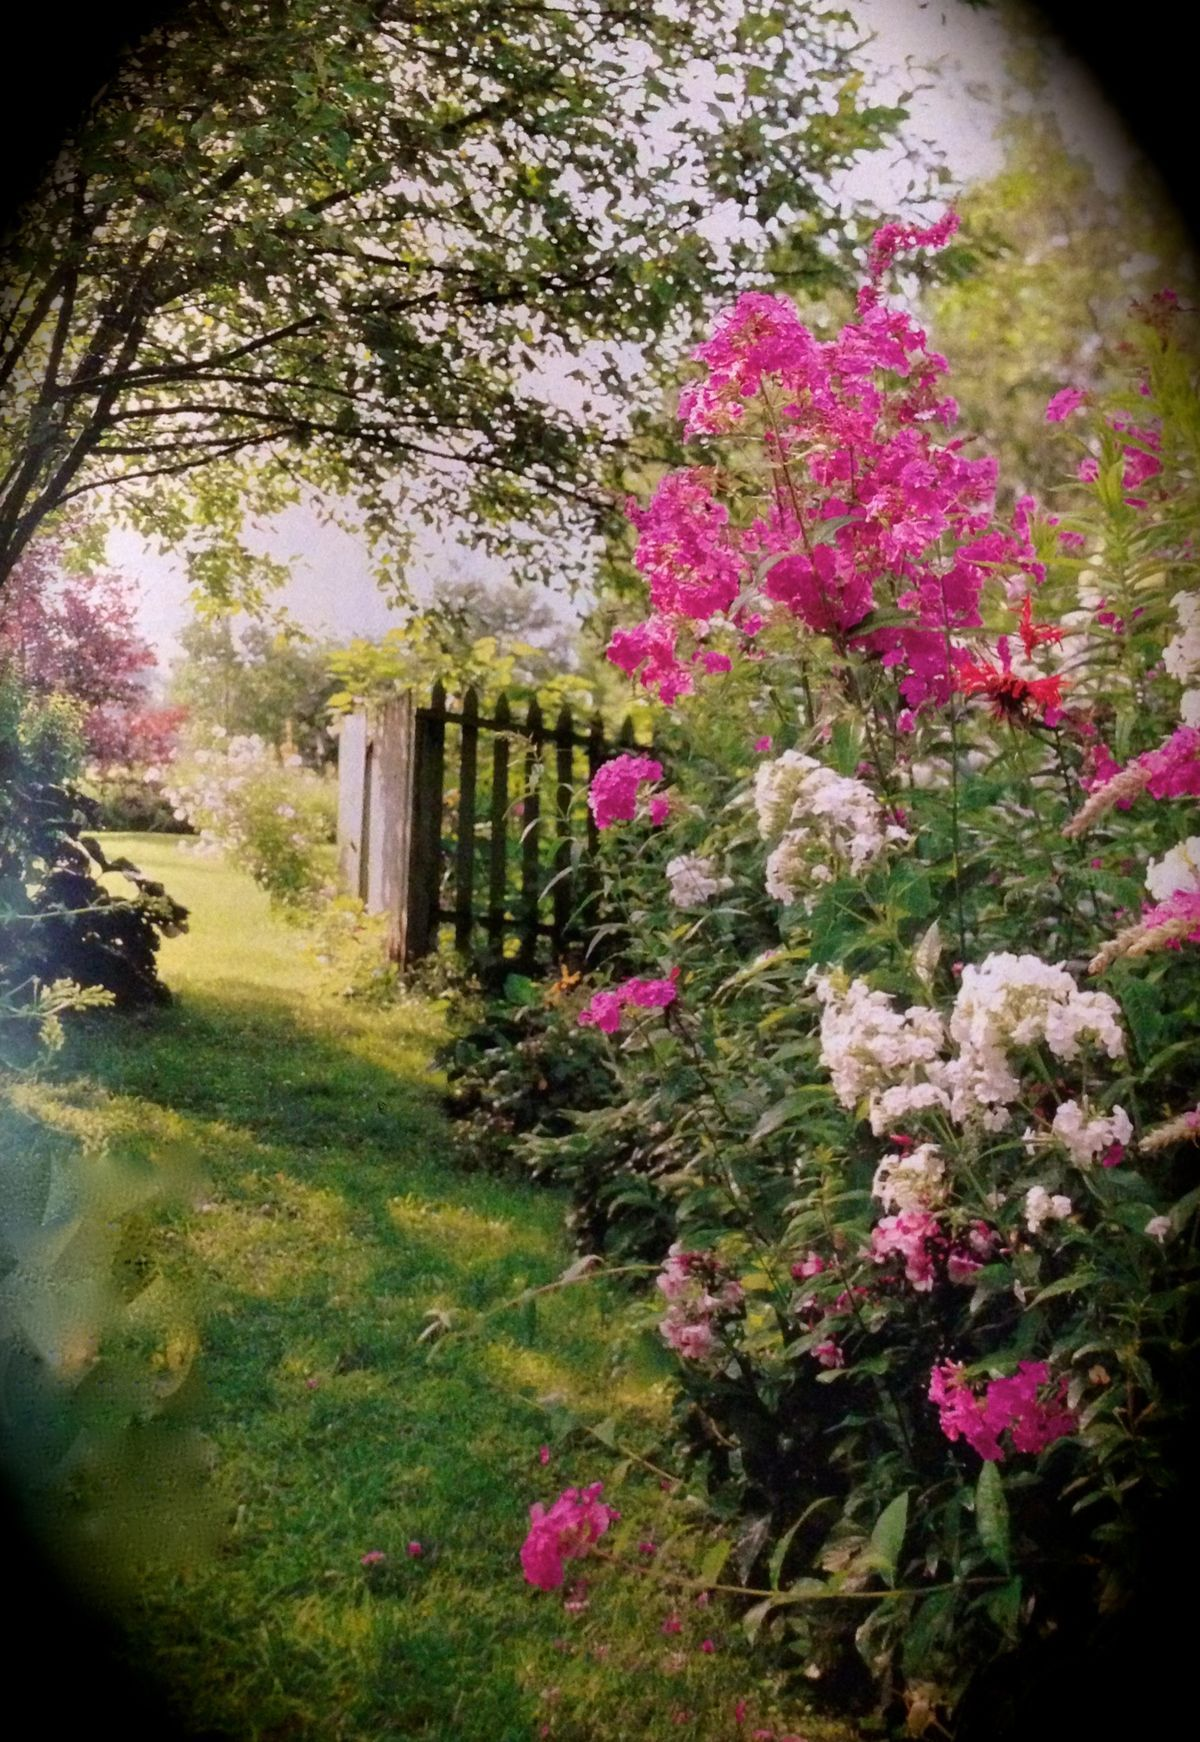 Af663fa69b138d77bb0447328db06011g 12001742 pixels lovely garden with a gate to the fields mightylinksfo